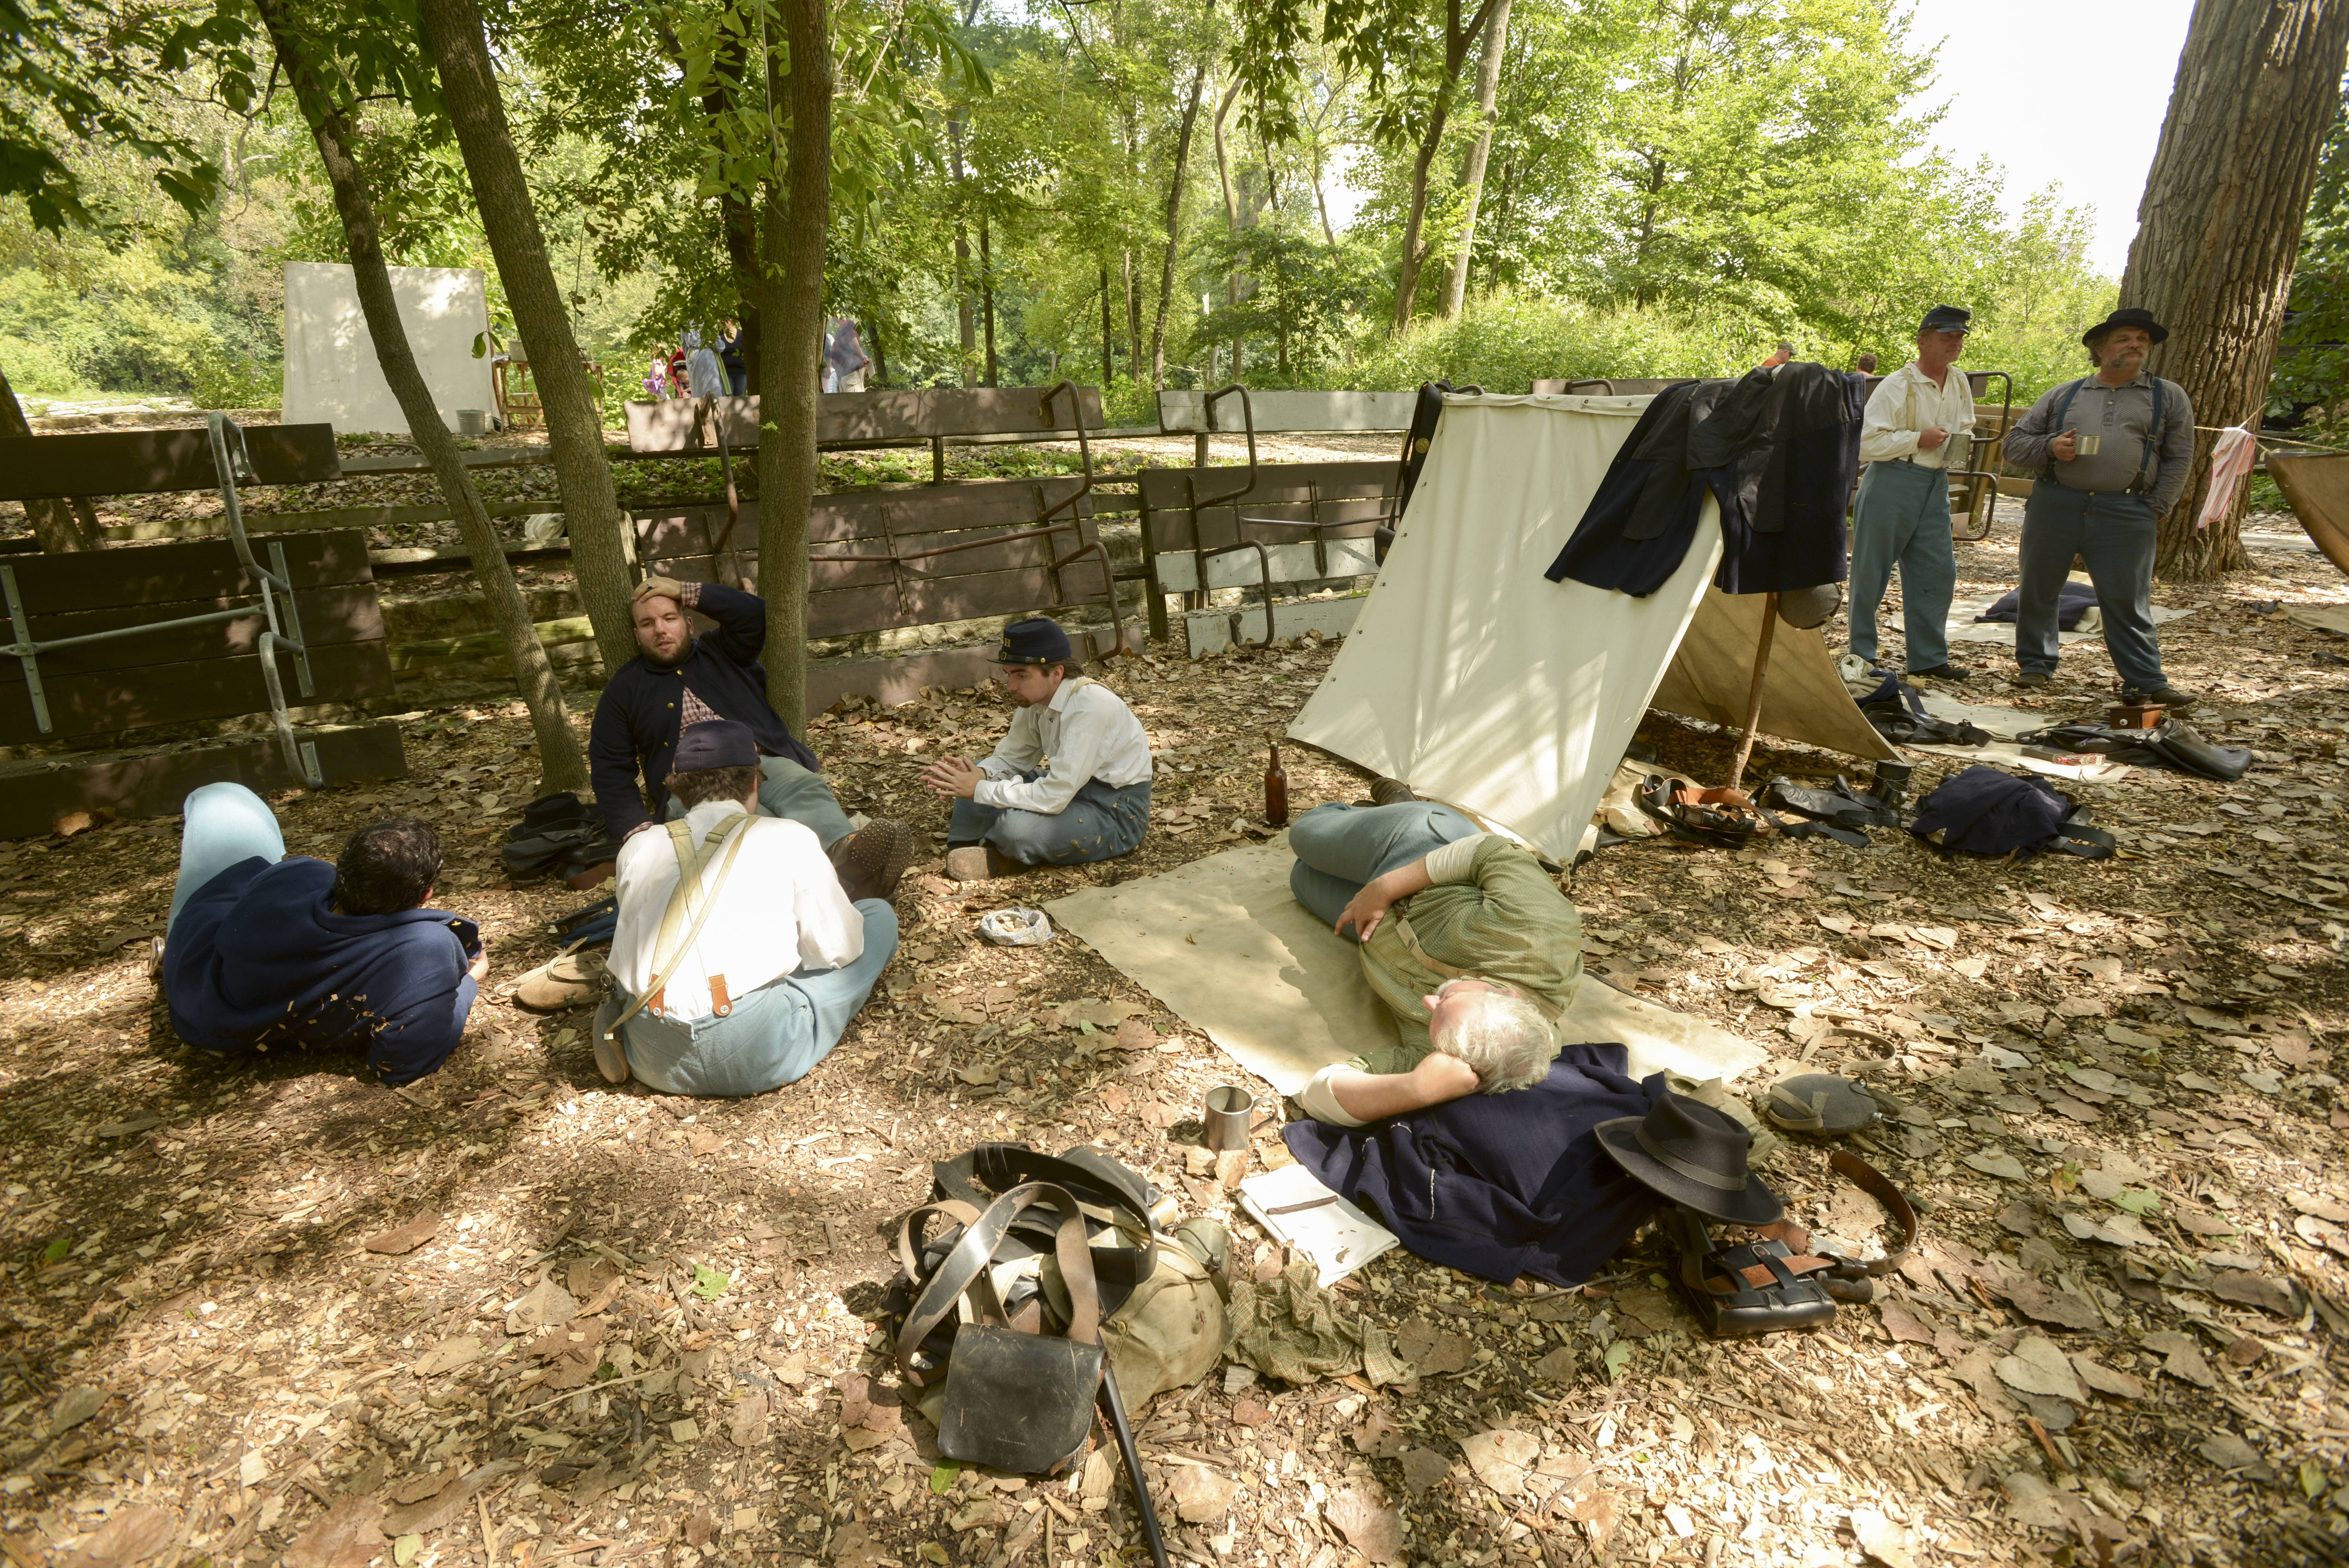 Re-enactors serving as Union Army soldiers relax Sunday during the Civil War Encampment at Graue Mill and Museum in Oak Brook.